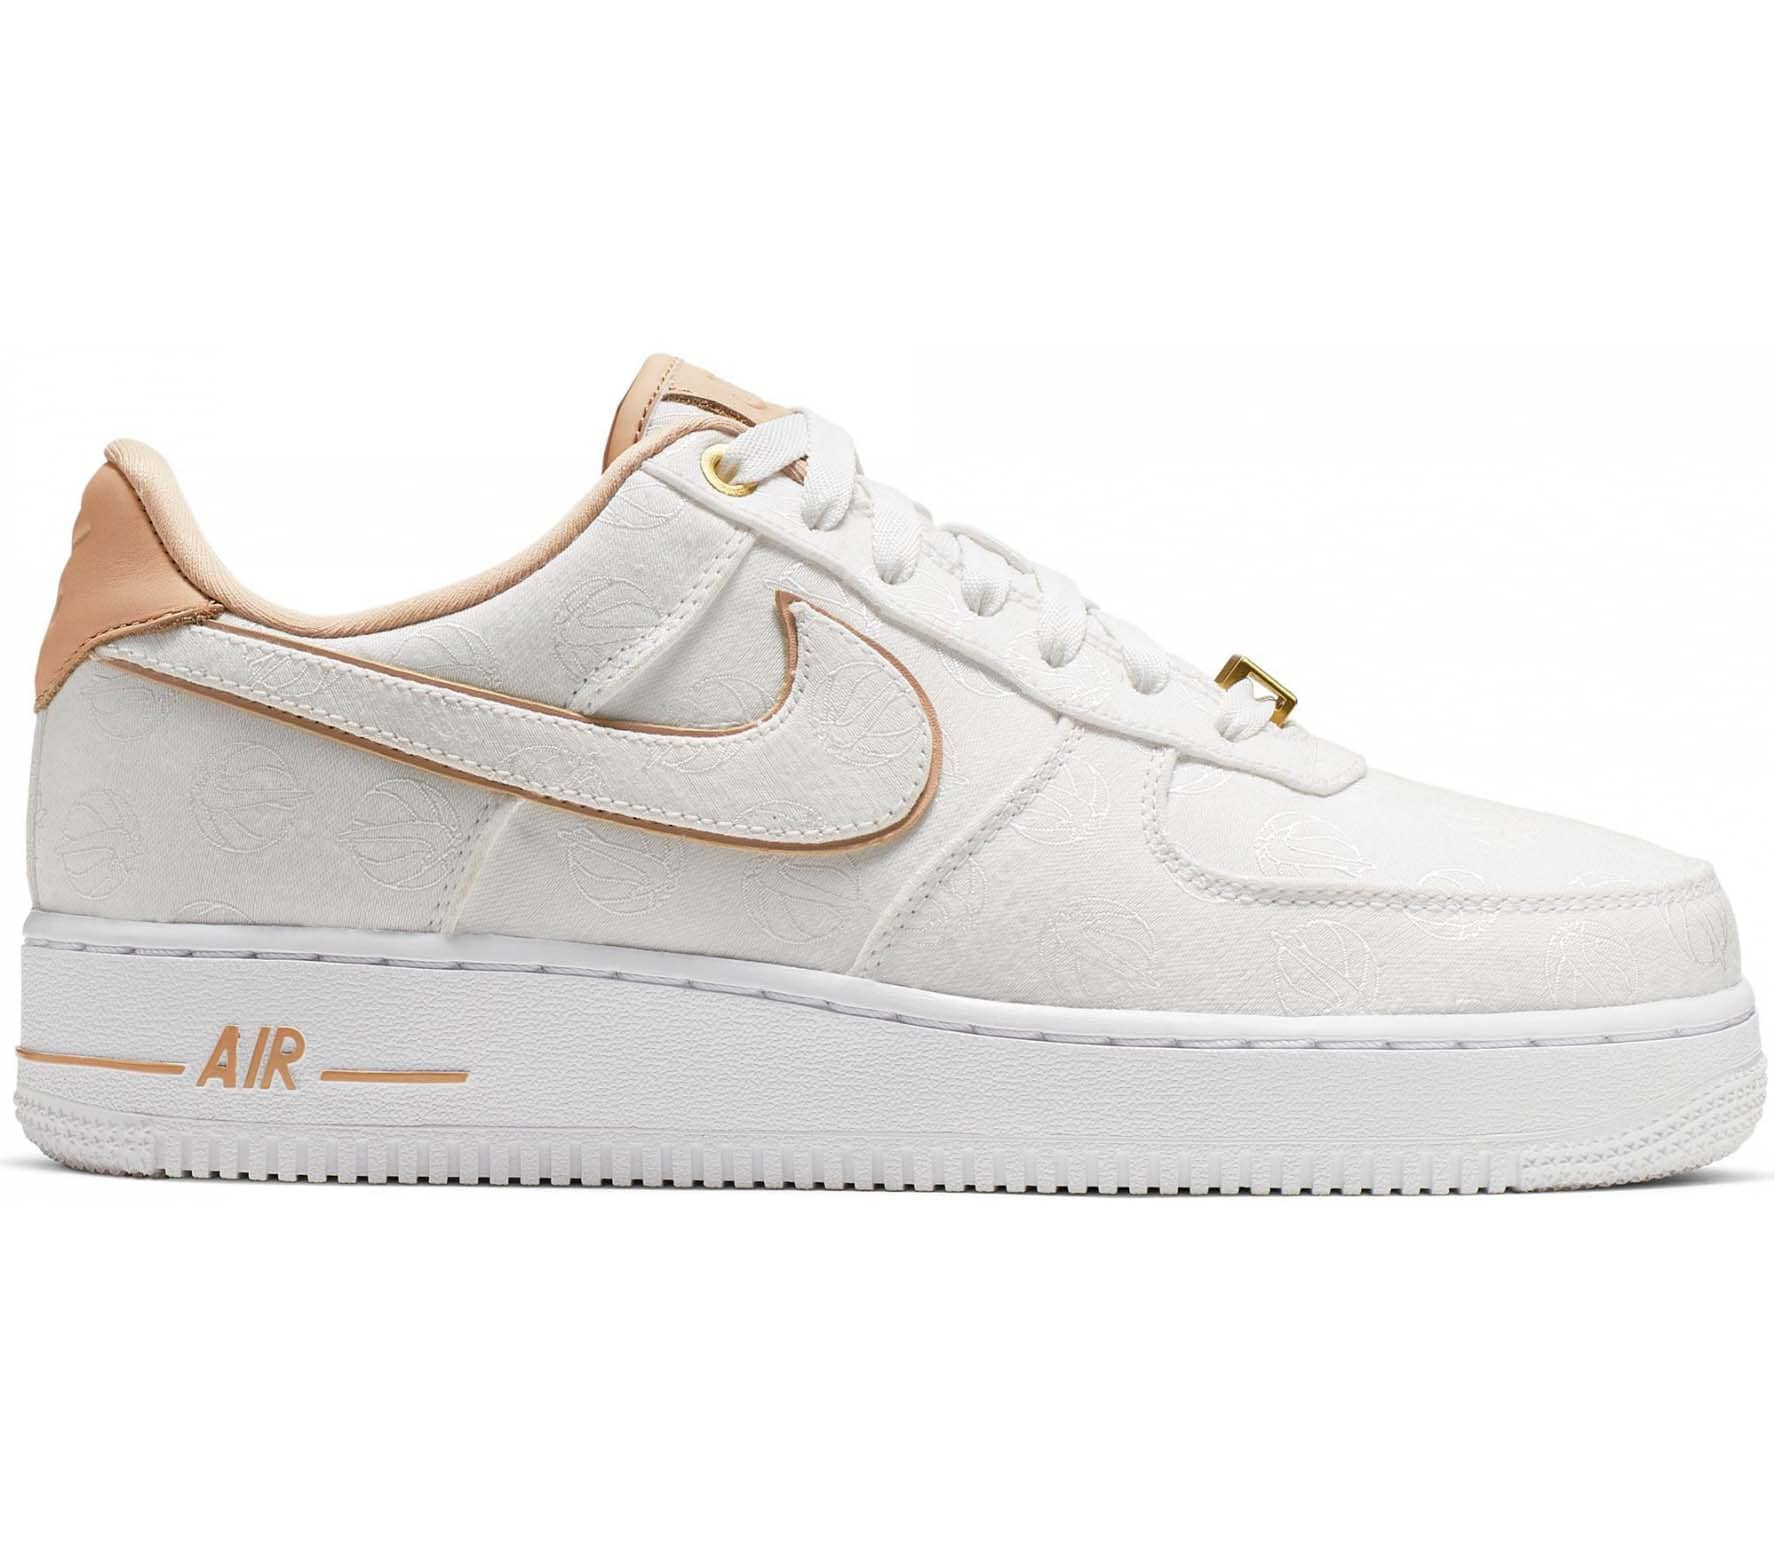 Air Force 1 '07 LX Femmes Baskets